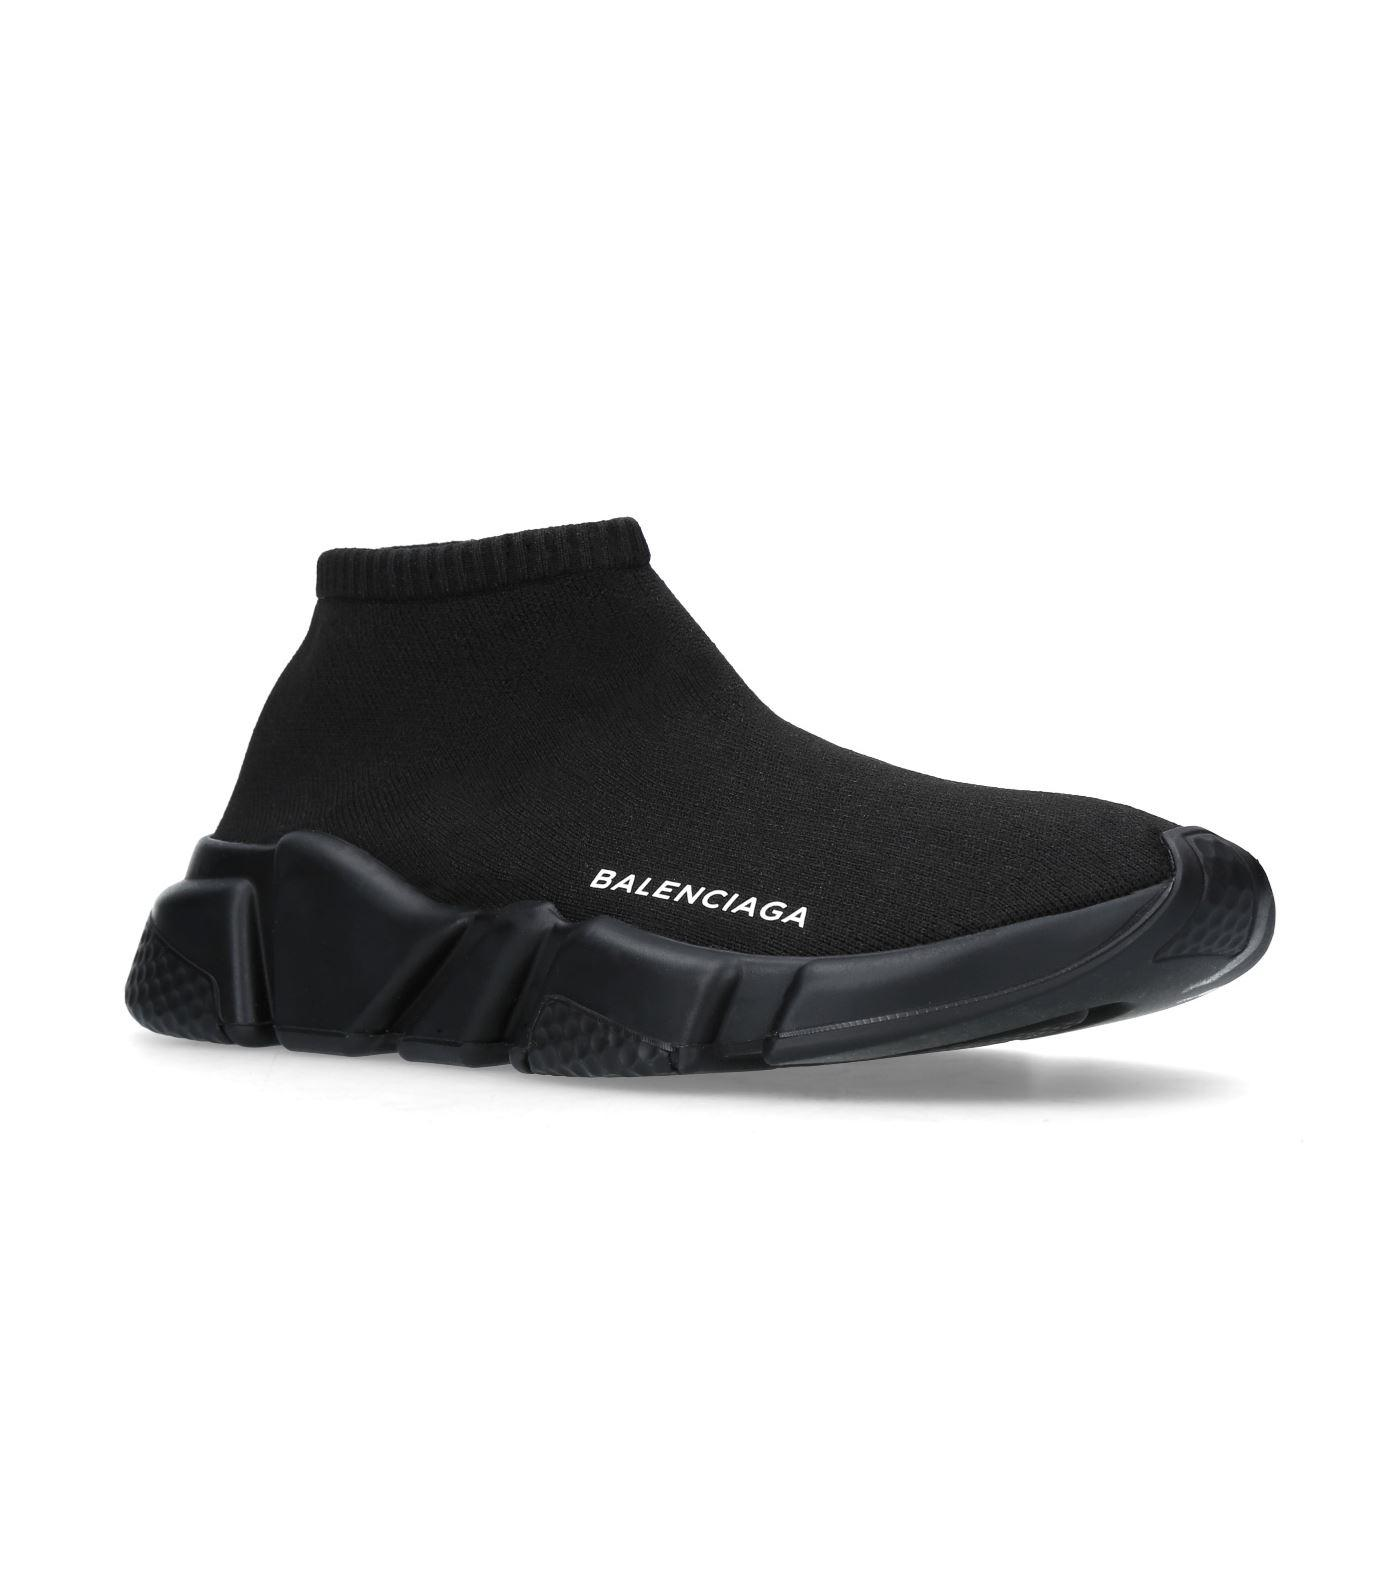 lyst balenciaga speed low top sneakers in black. Black Bedroom Furniture Sets. Home Design Ideas